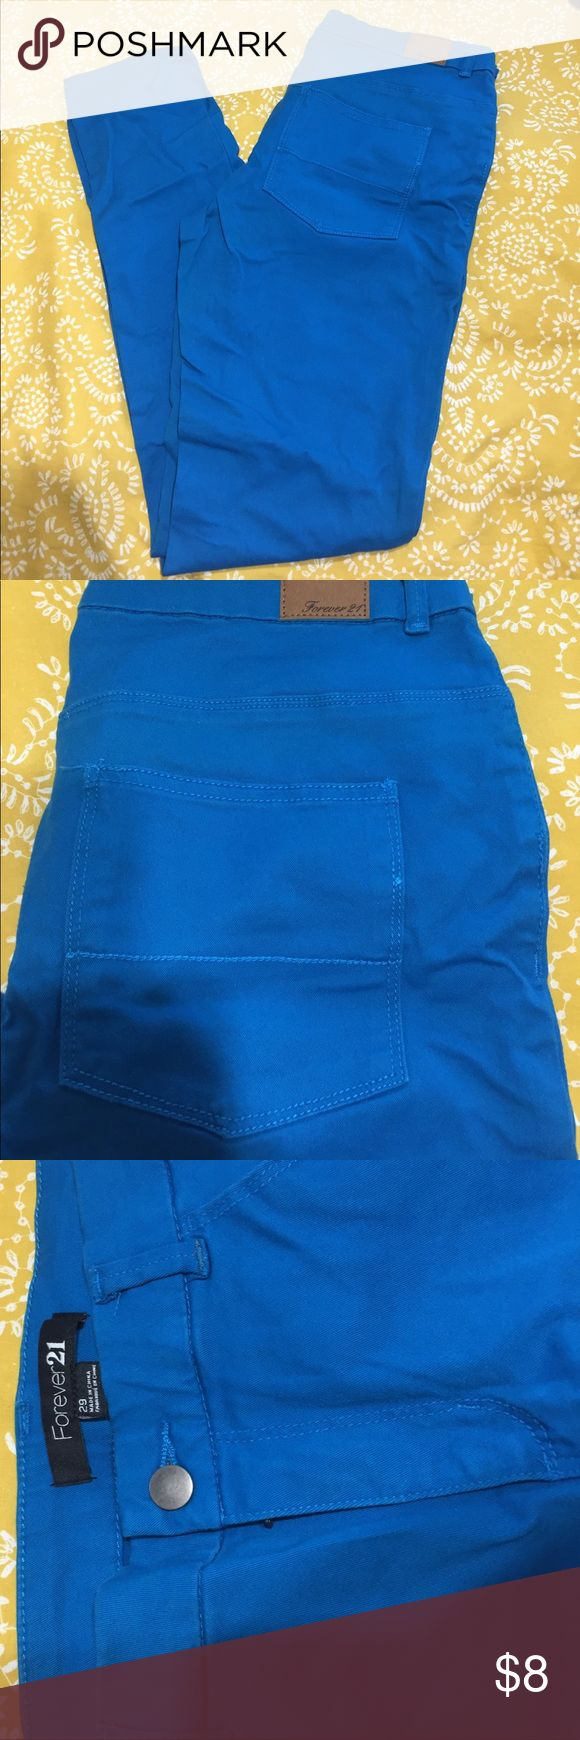 Bright blue jeans Perfect for that pop of color in your wardrobe , never worn and are stretchy fabric! Forever 21 Jeans